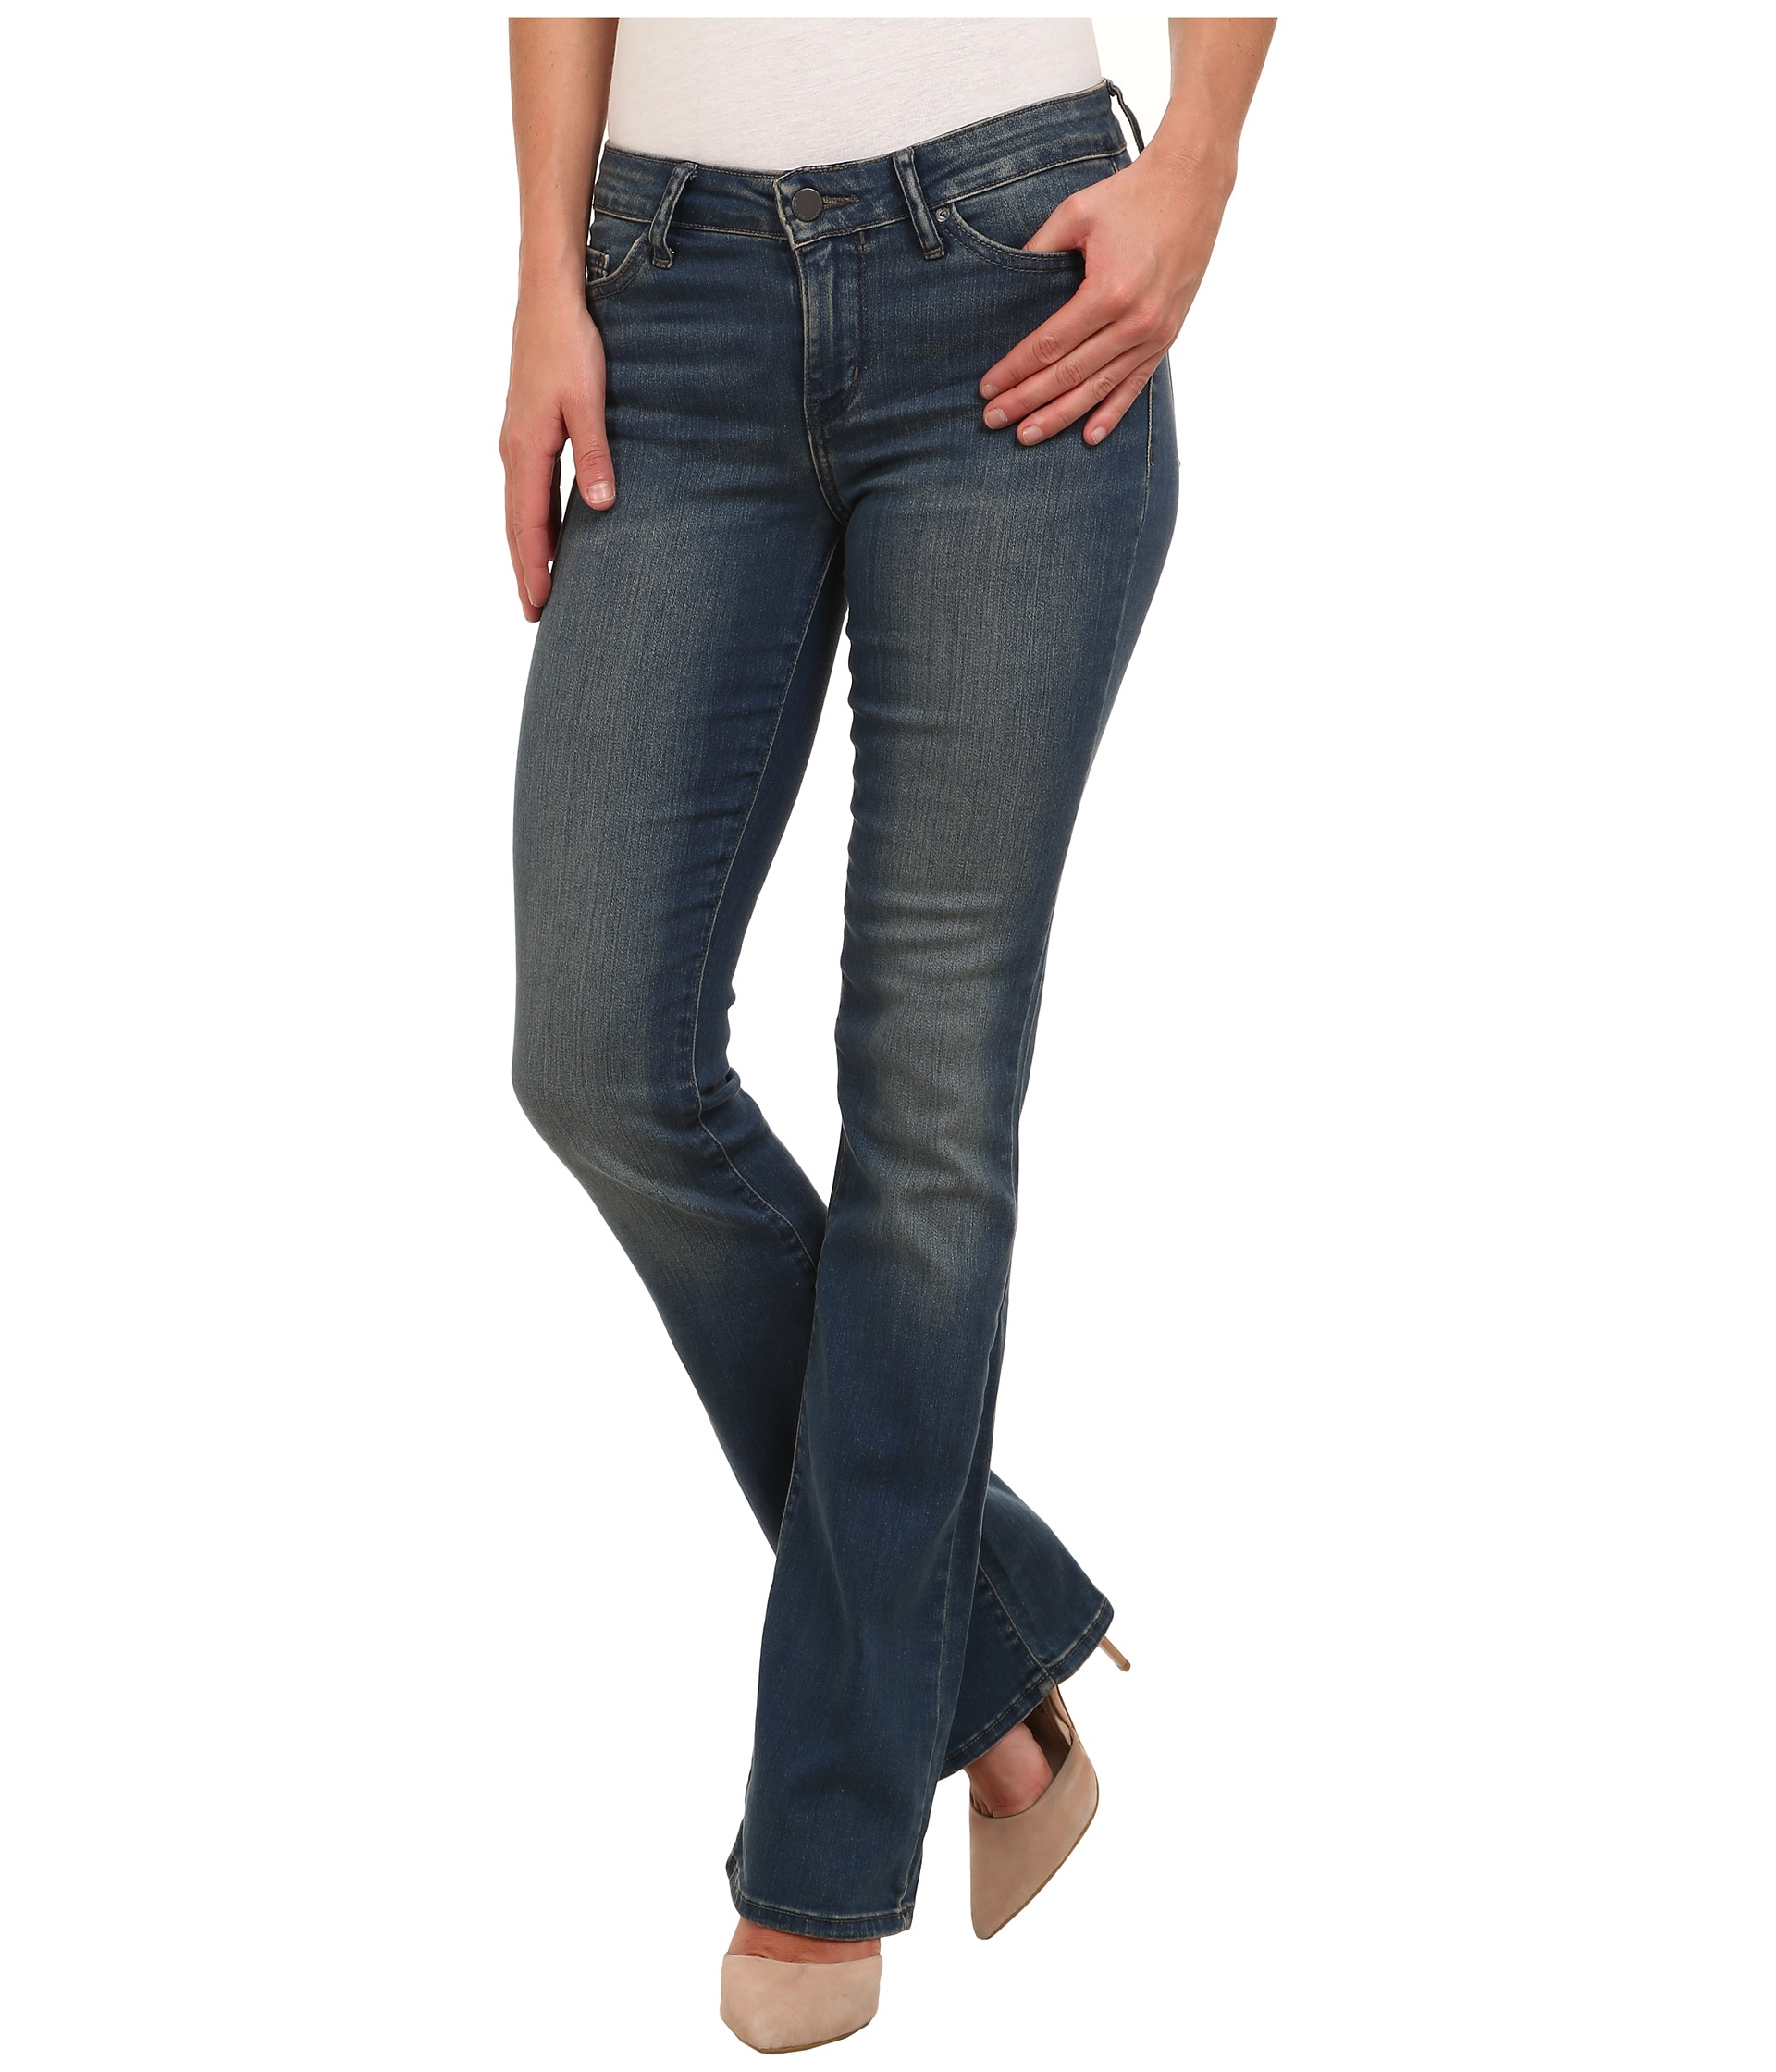 Skinny Fit Jeans With Zipper Pockets Calvin Klein Jeans ...